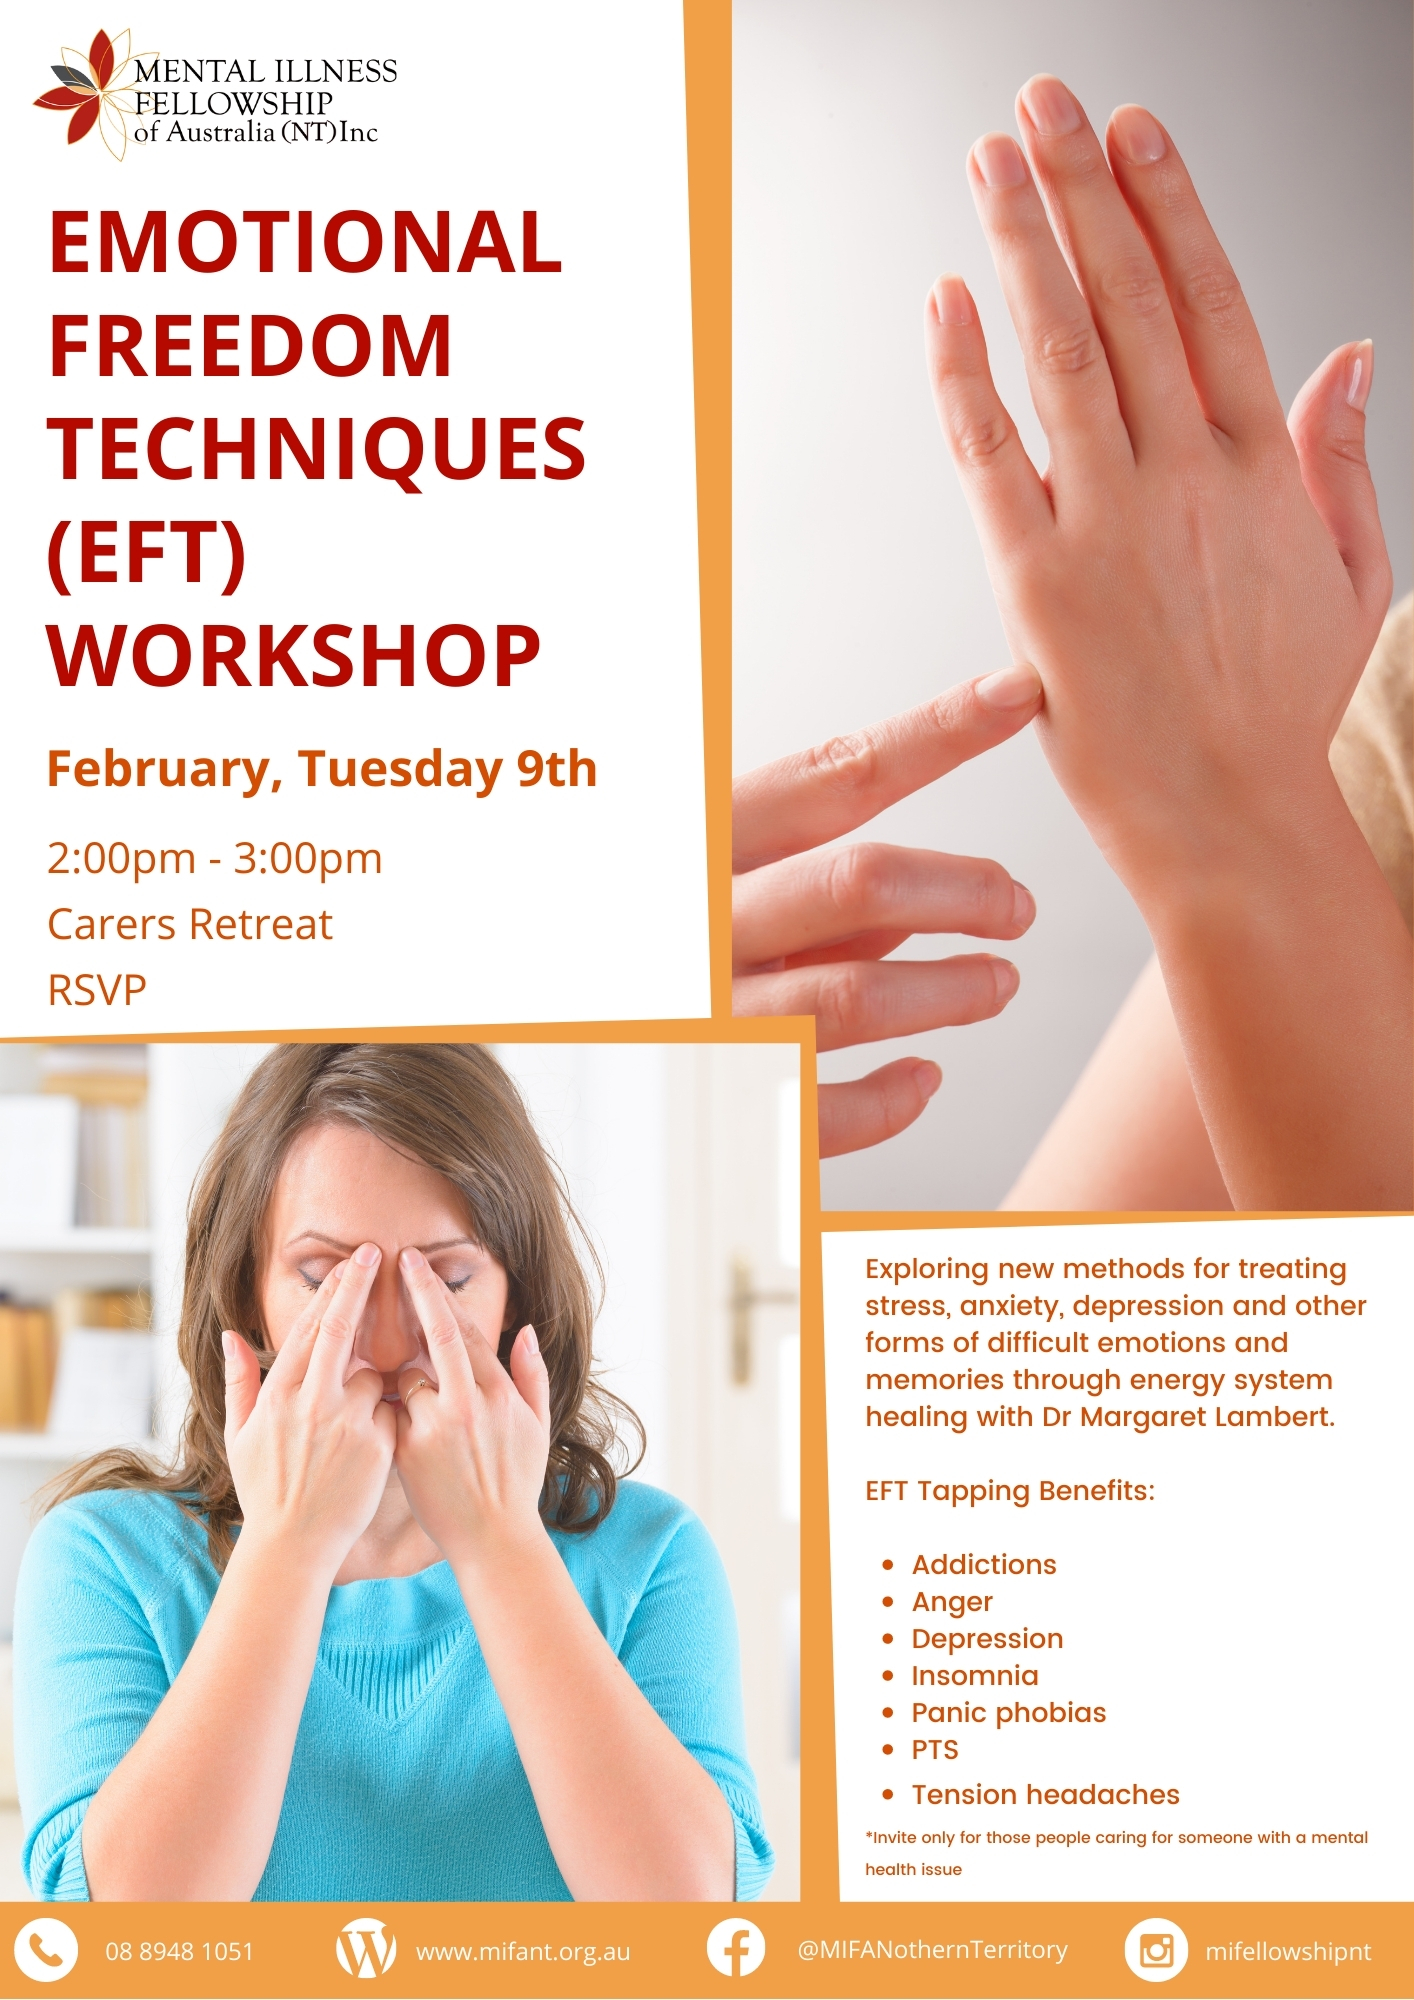 Emotional Freedom Techniques (EFT) workshop